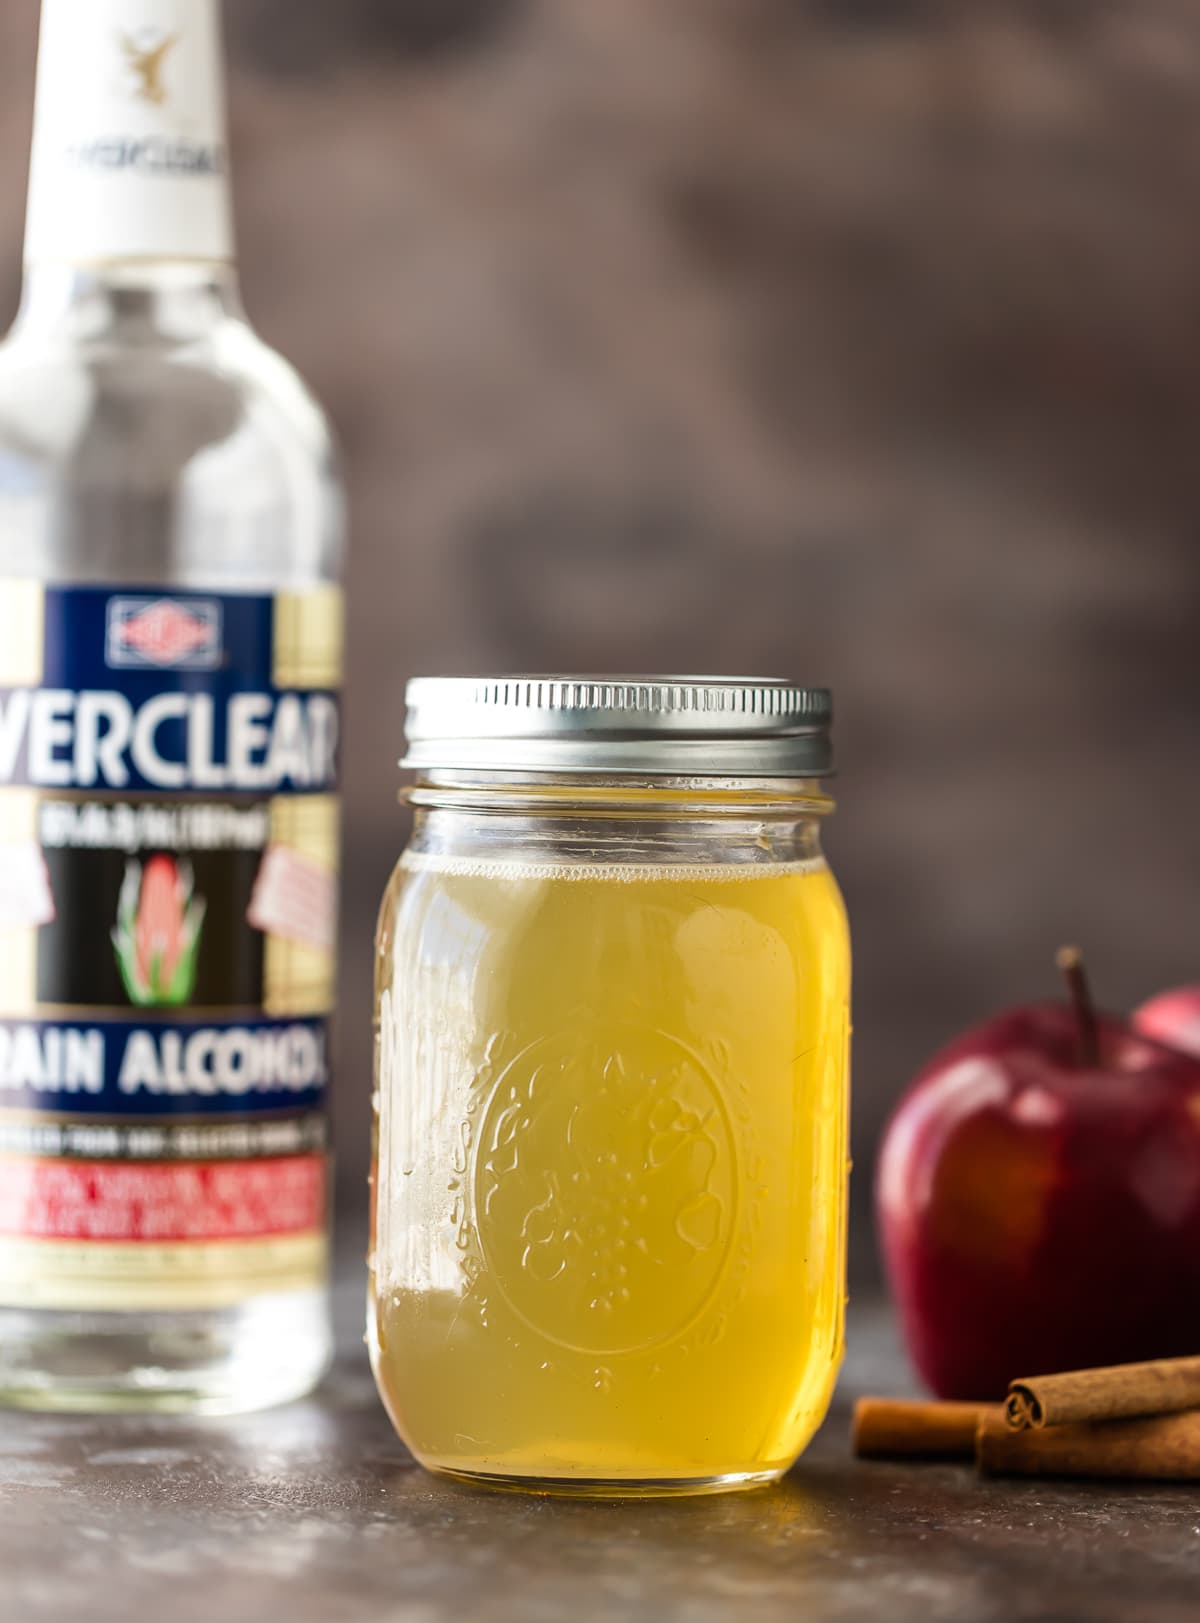 A jar of homemade apple vodka next to a bottle of everclear